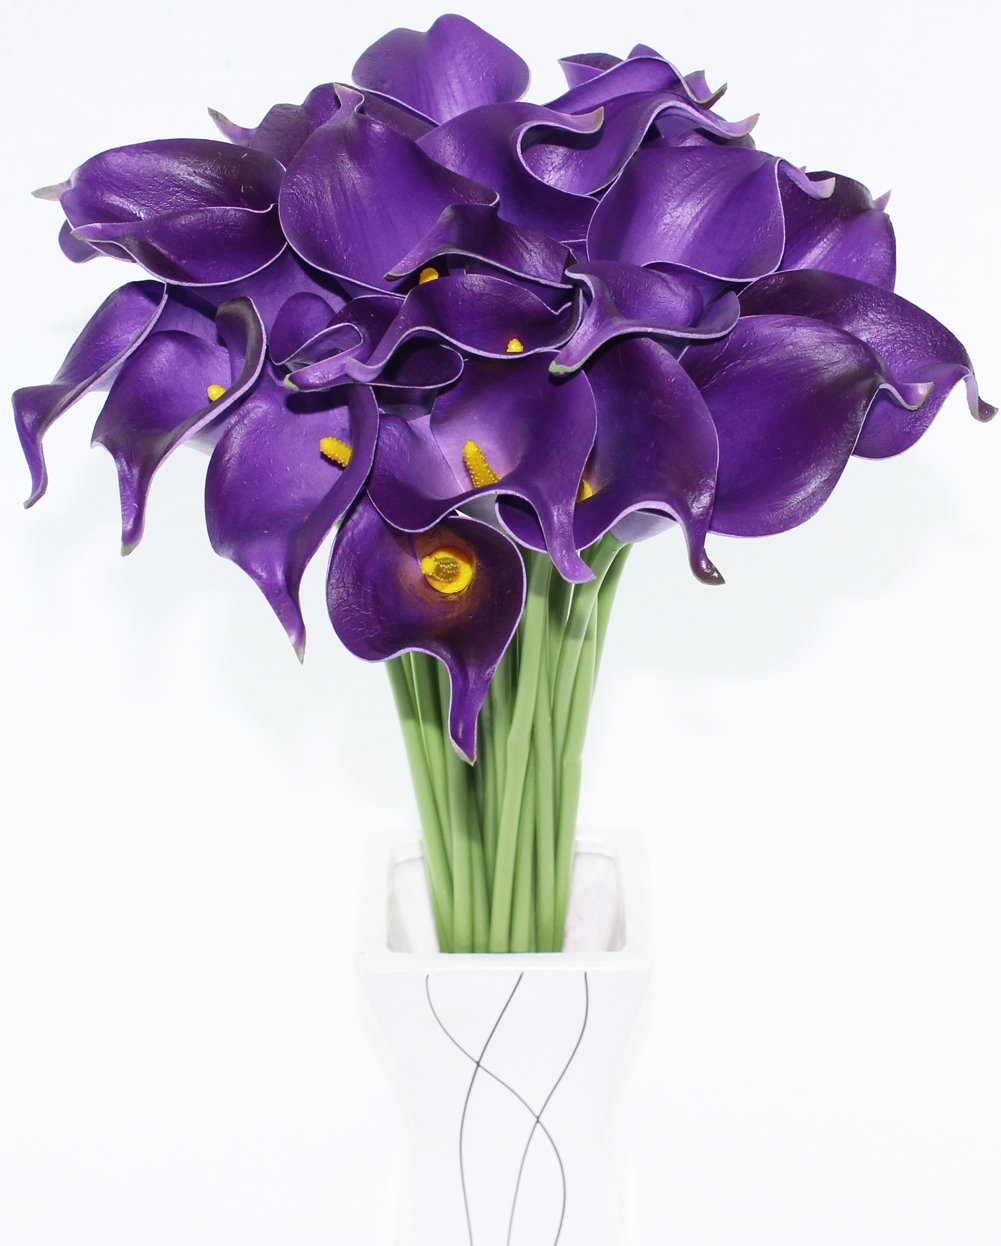 Amazon simpleyourstyle calla lily artificial flower 30pcs no amazon simpleyourstyle calla lily artificial flower 30pcs no vase bridal wedding bouquet 30 head latex real touch flower bouquets purple home izmirmasajfo